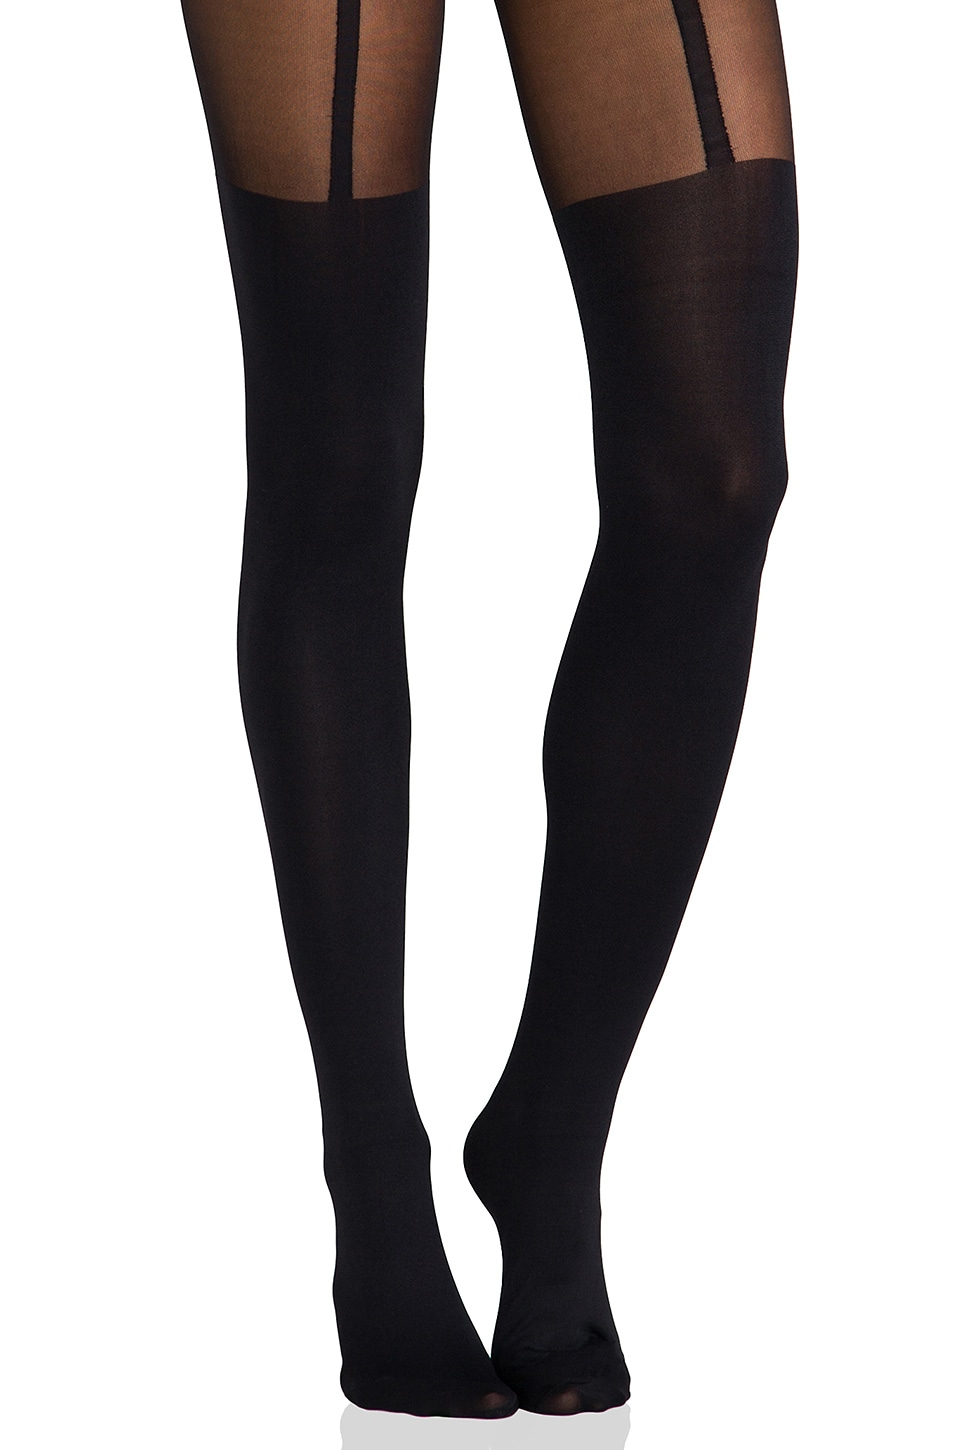 Pretty Polly Suspender Tights in Black